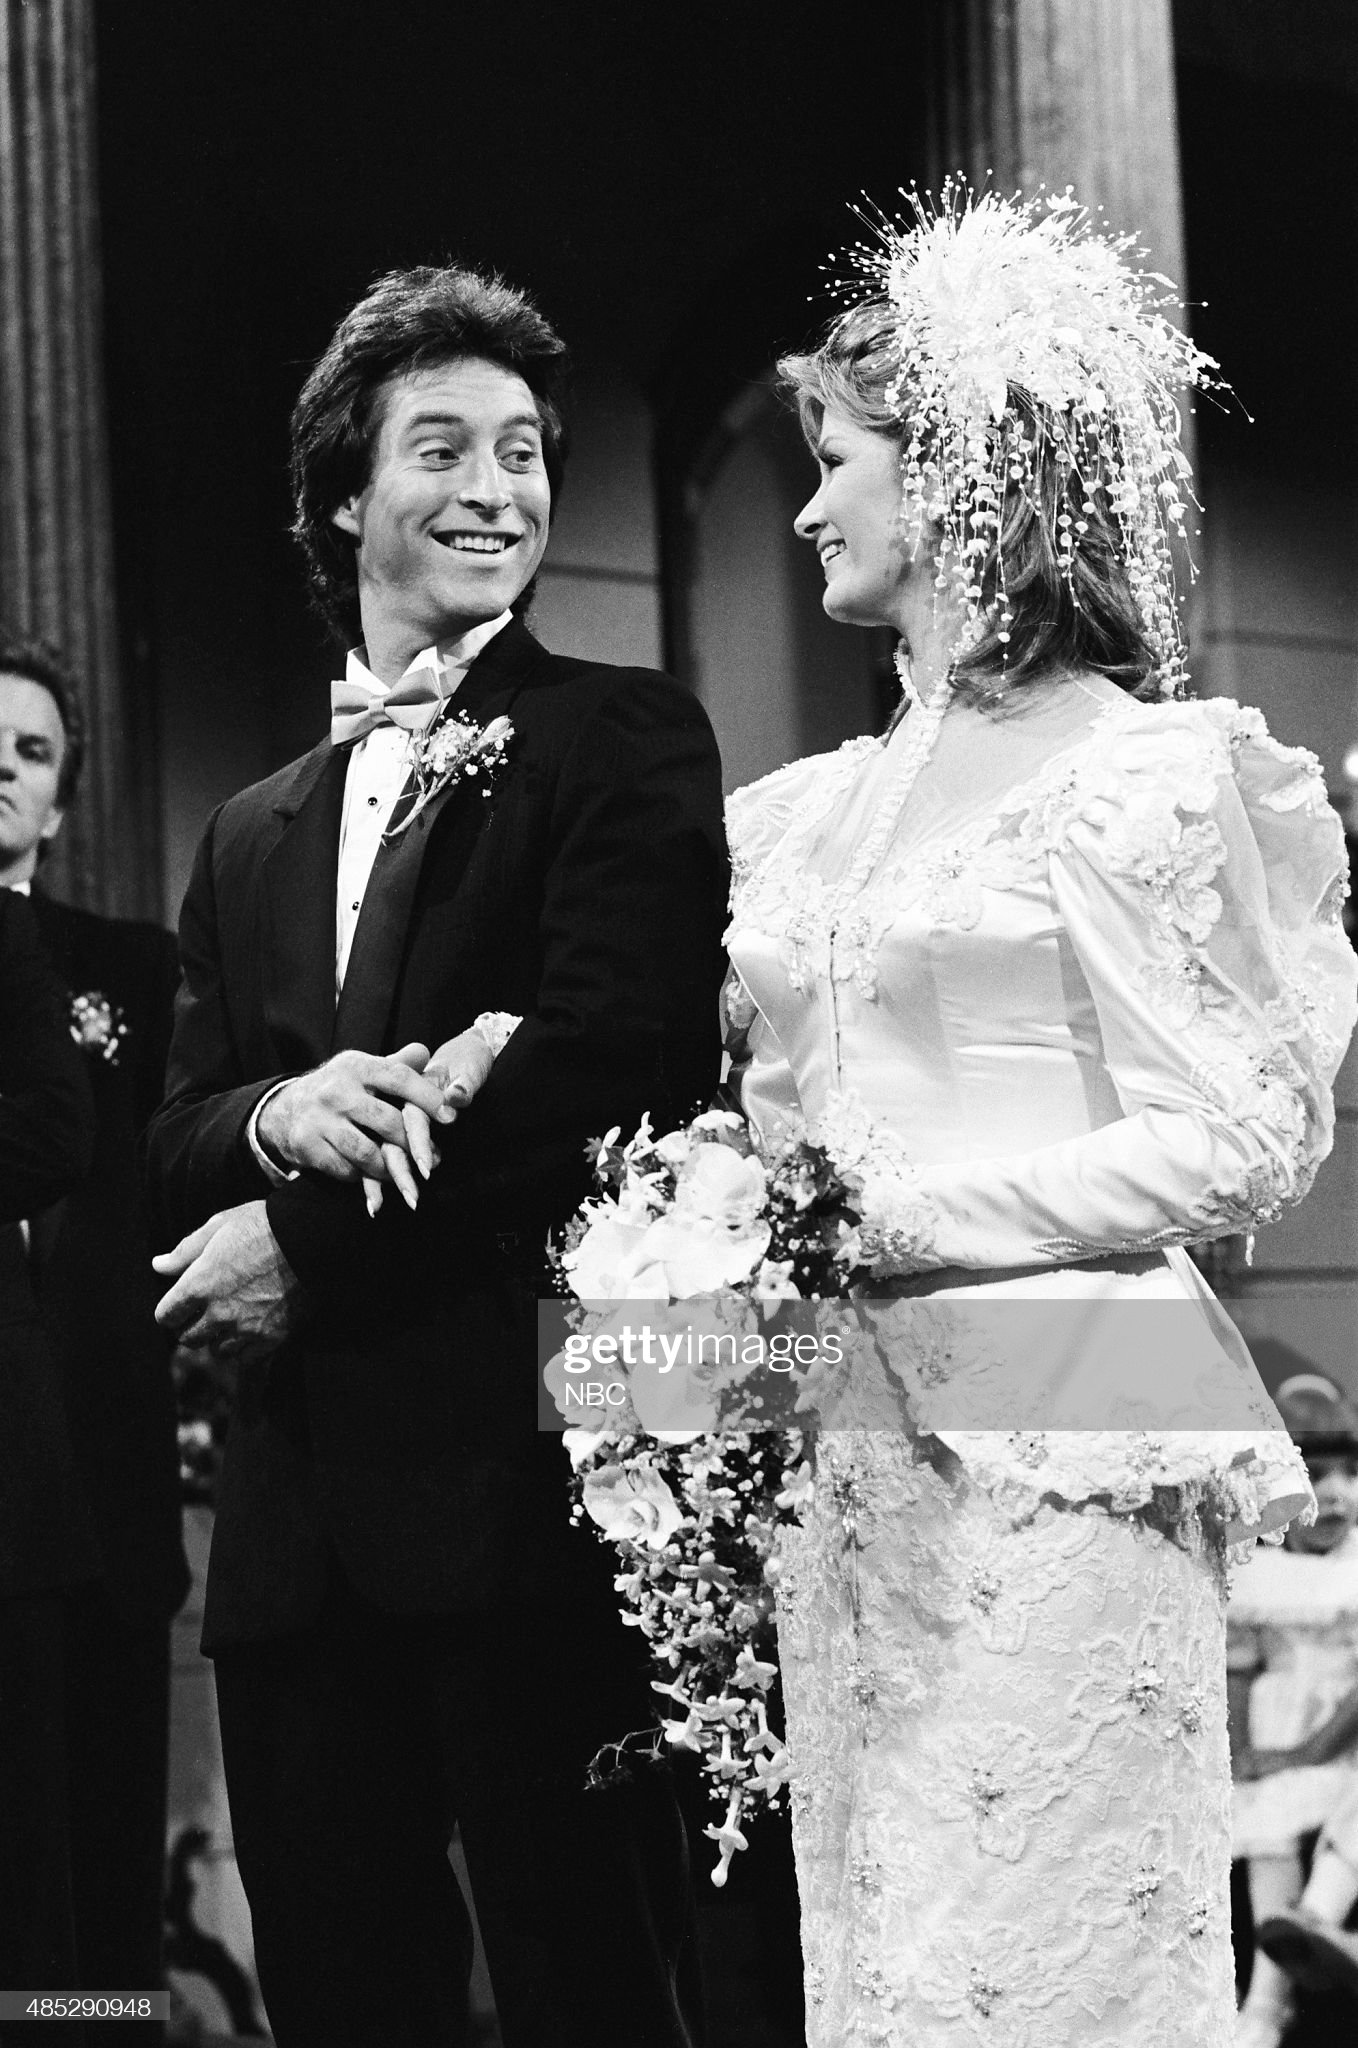 marlena-evans-roman-brady-wedding-pictured-drake-hogestyn-as-roman-picture-id485290948